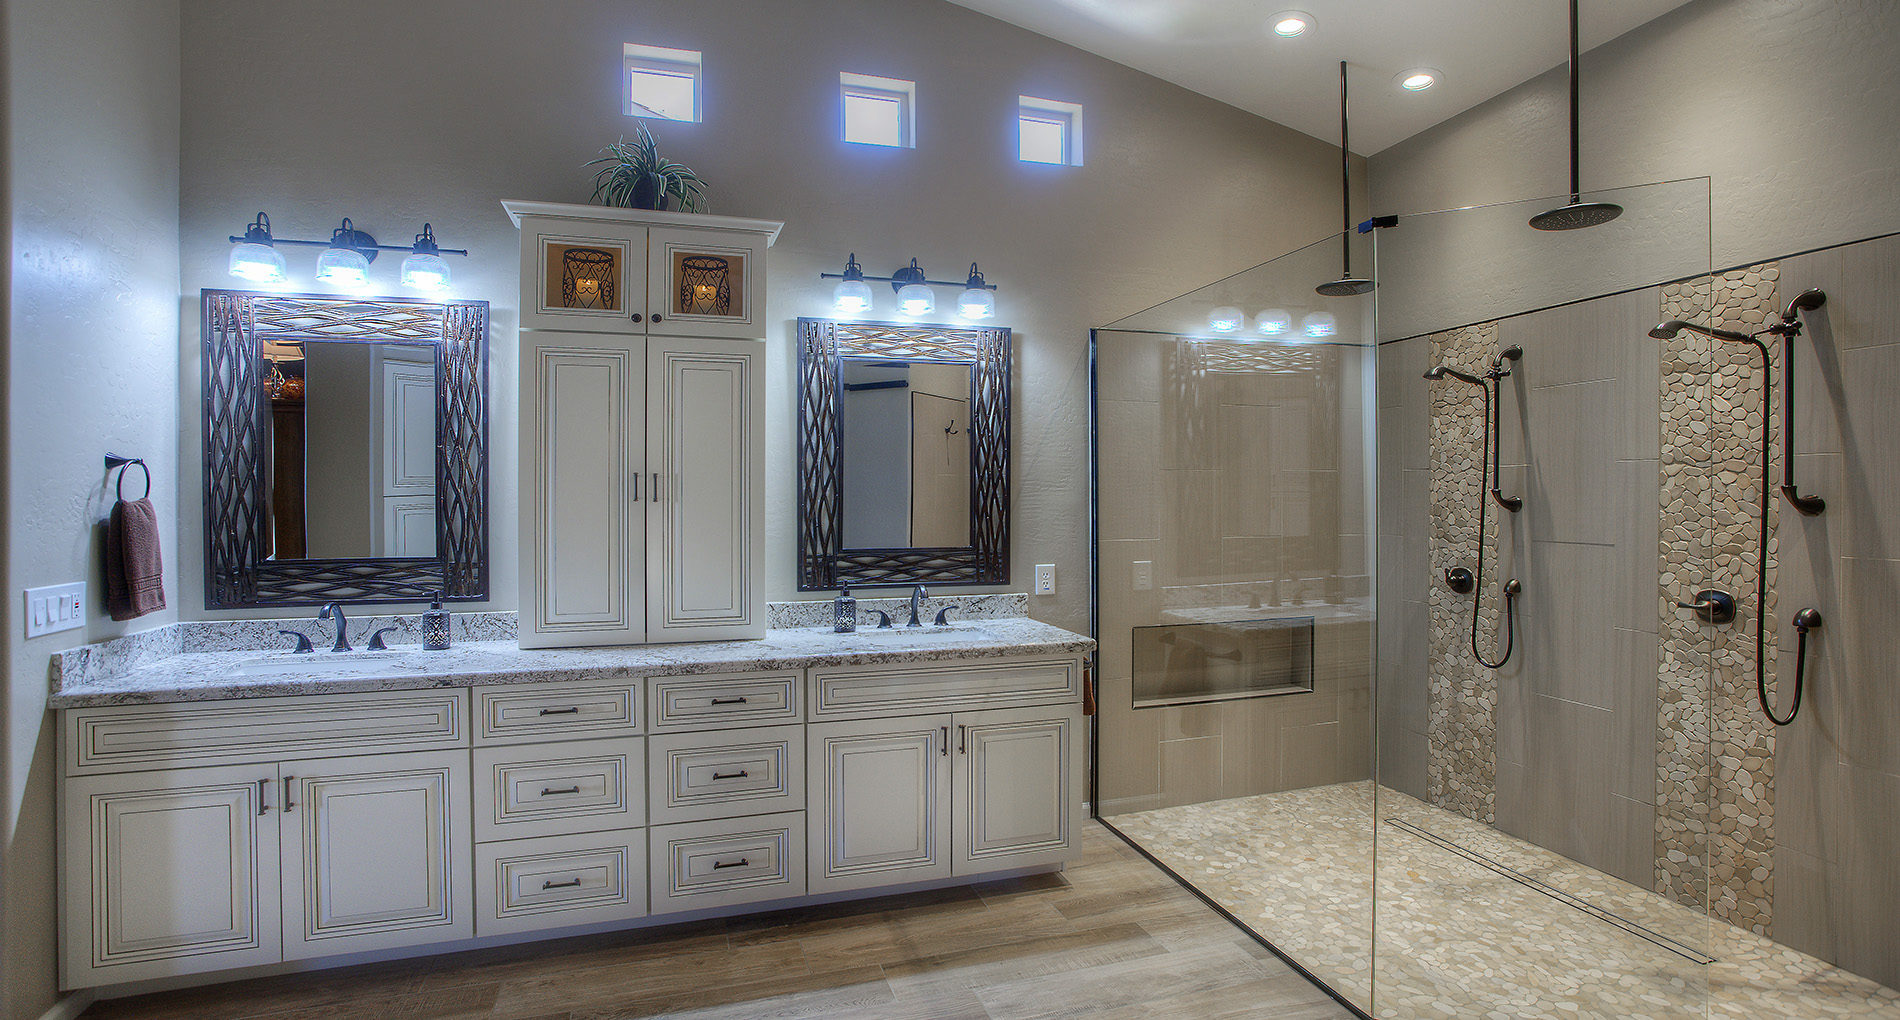 Bathroom Remodel Scottsdale 97thstreet Slider